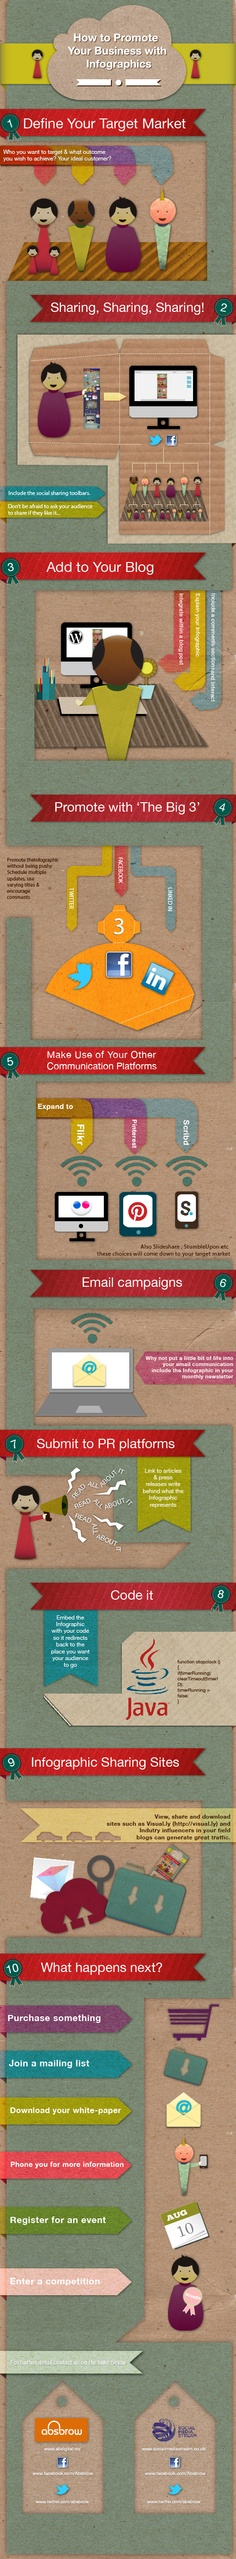 How to Promote your Business Using infographics by Emile , via Behance